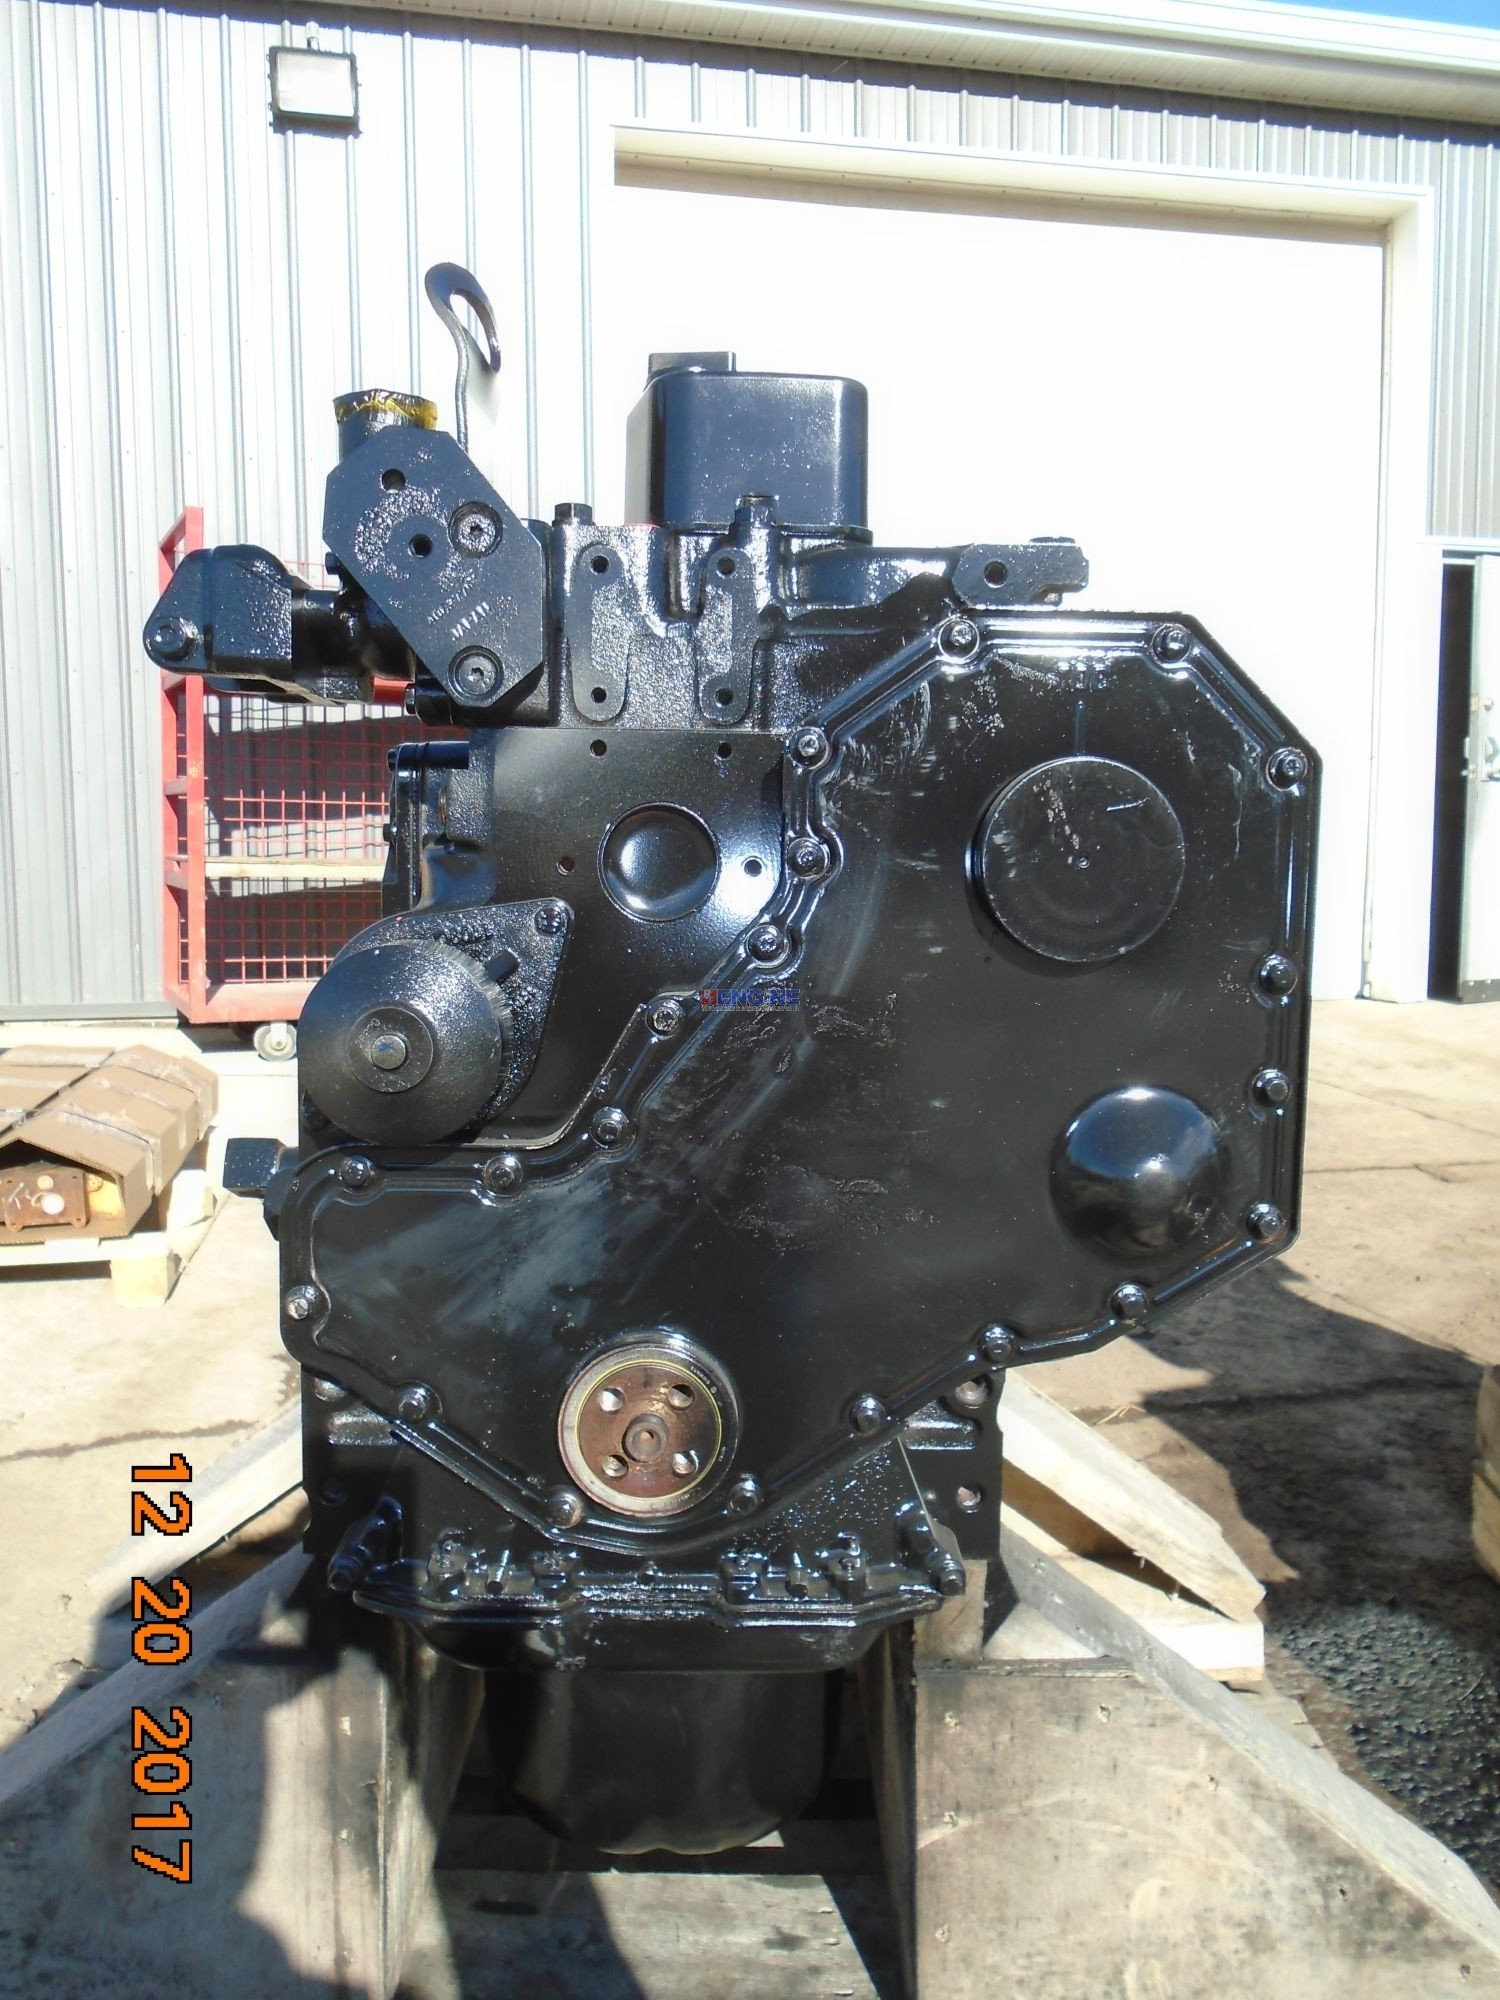 R. F. Engine Cummins, Komatsu 4B, 5.9L, S6D102E-1 Engine Long Block Rebuilt 2071, 2296